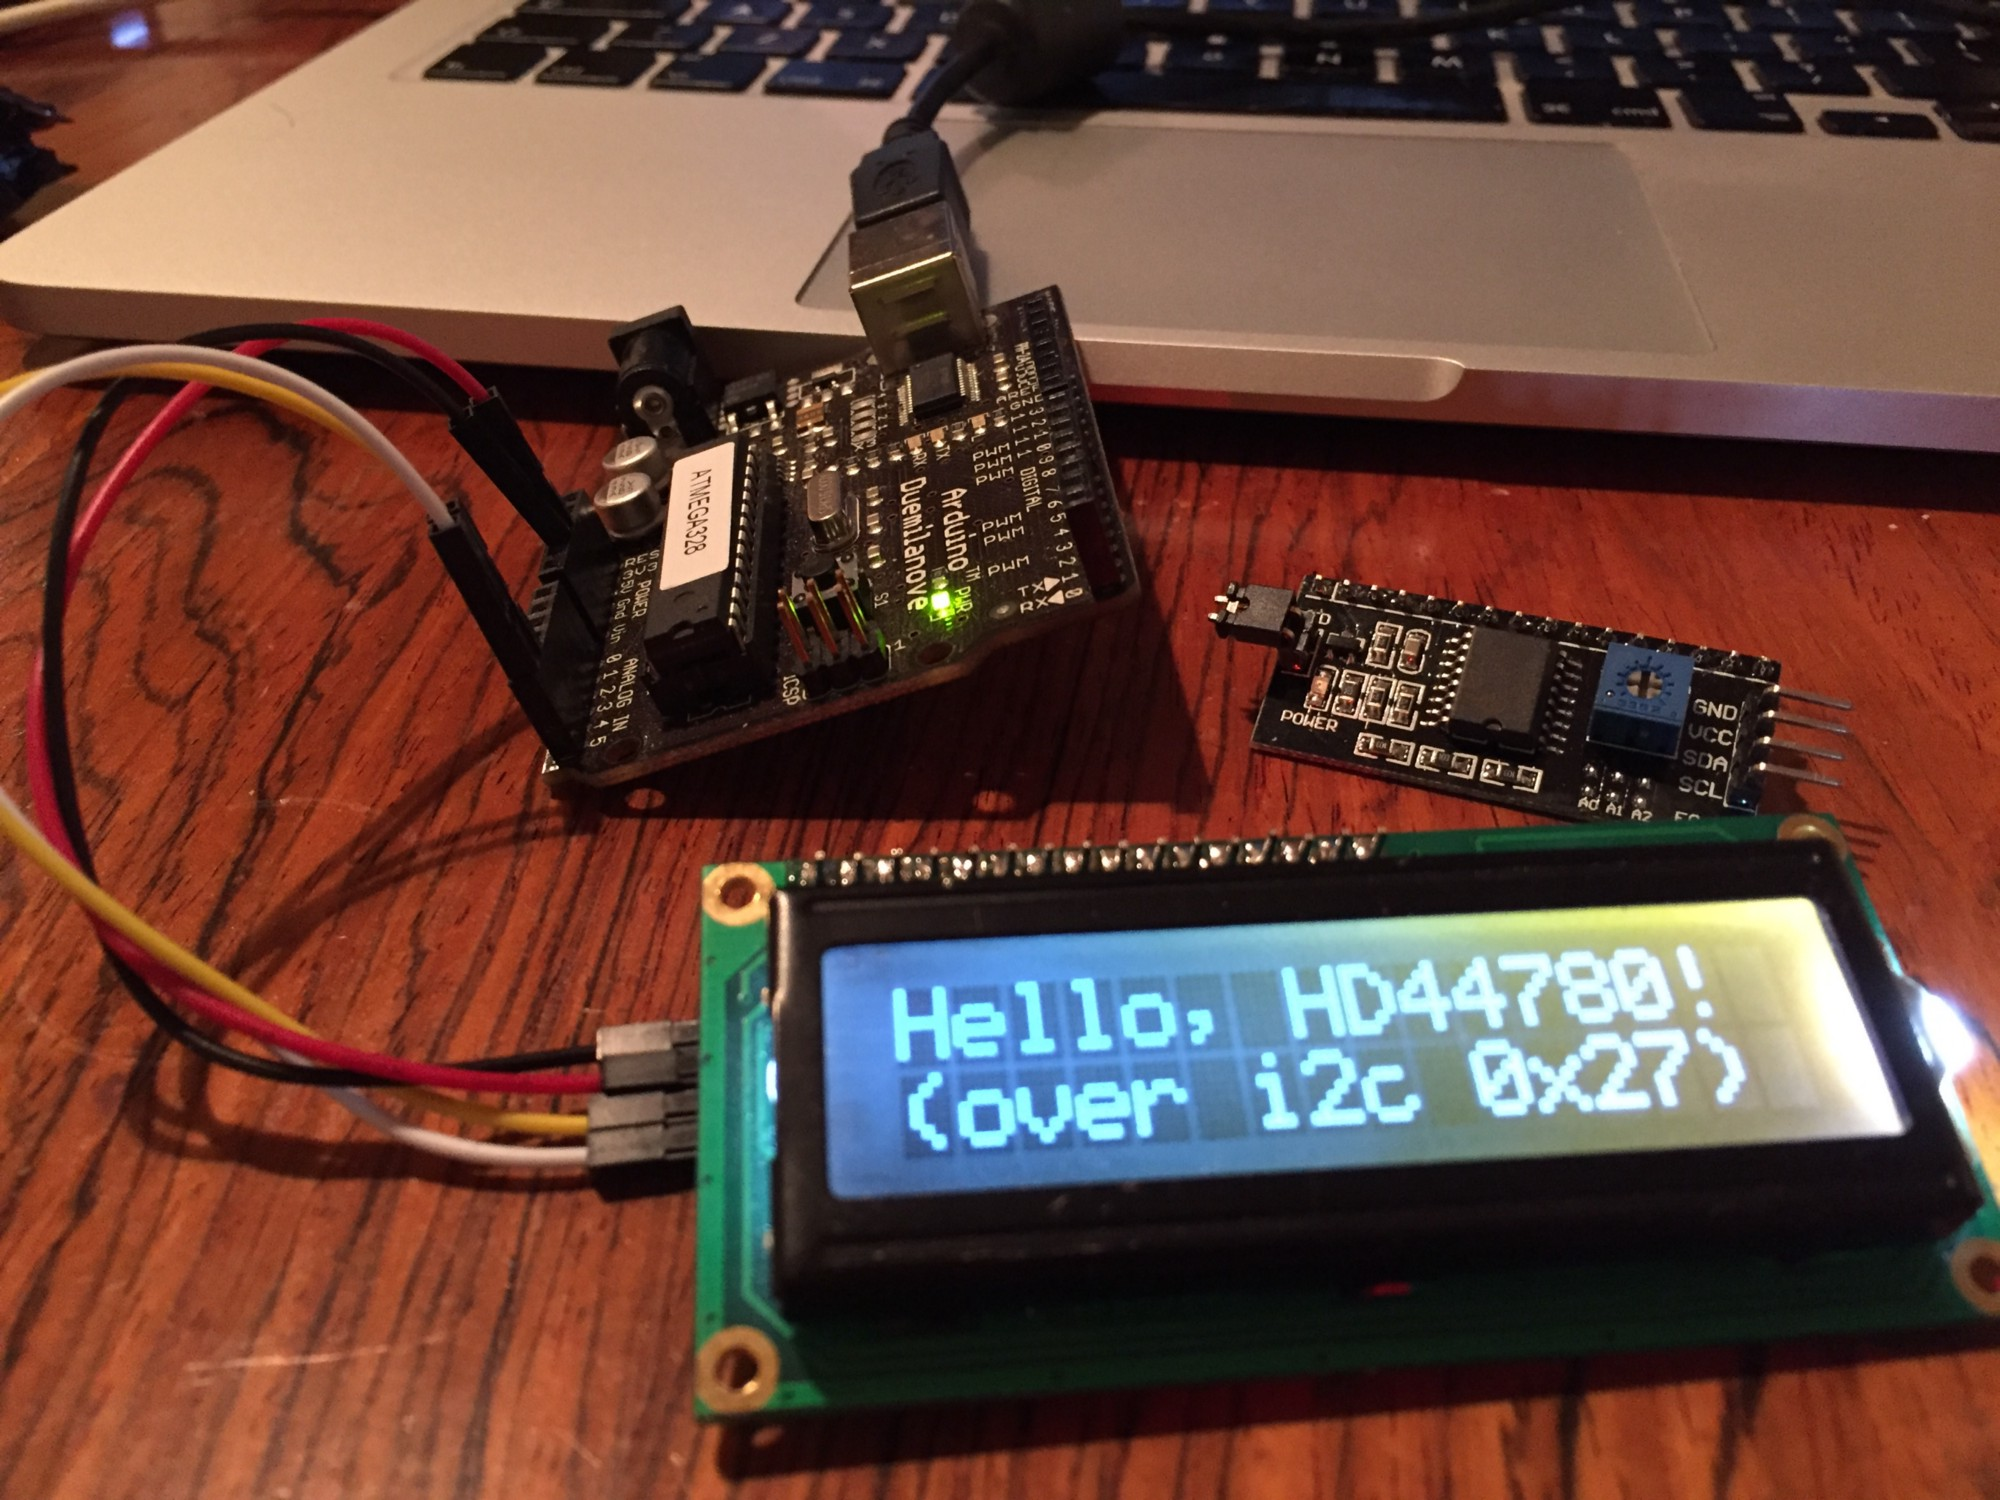 Arduino Cheap I2c Lcd Backpack Ubi De Feo Medium Level Shifter Circuit Image Search Results While On A Shopping Spree Ebay I Ended Up Purchasing Couple Of Backpacks For Hd44780 Based Lcds These Controller Boards Are The Pcf8574